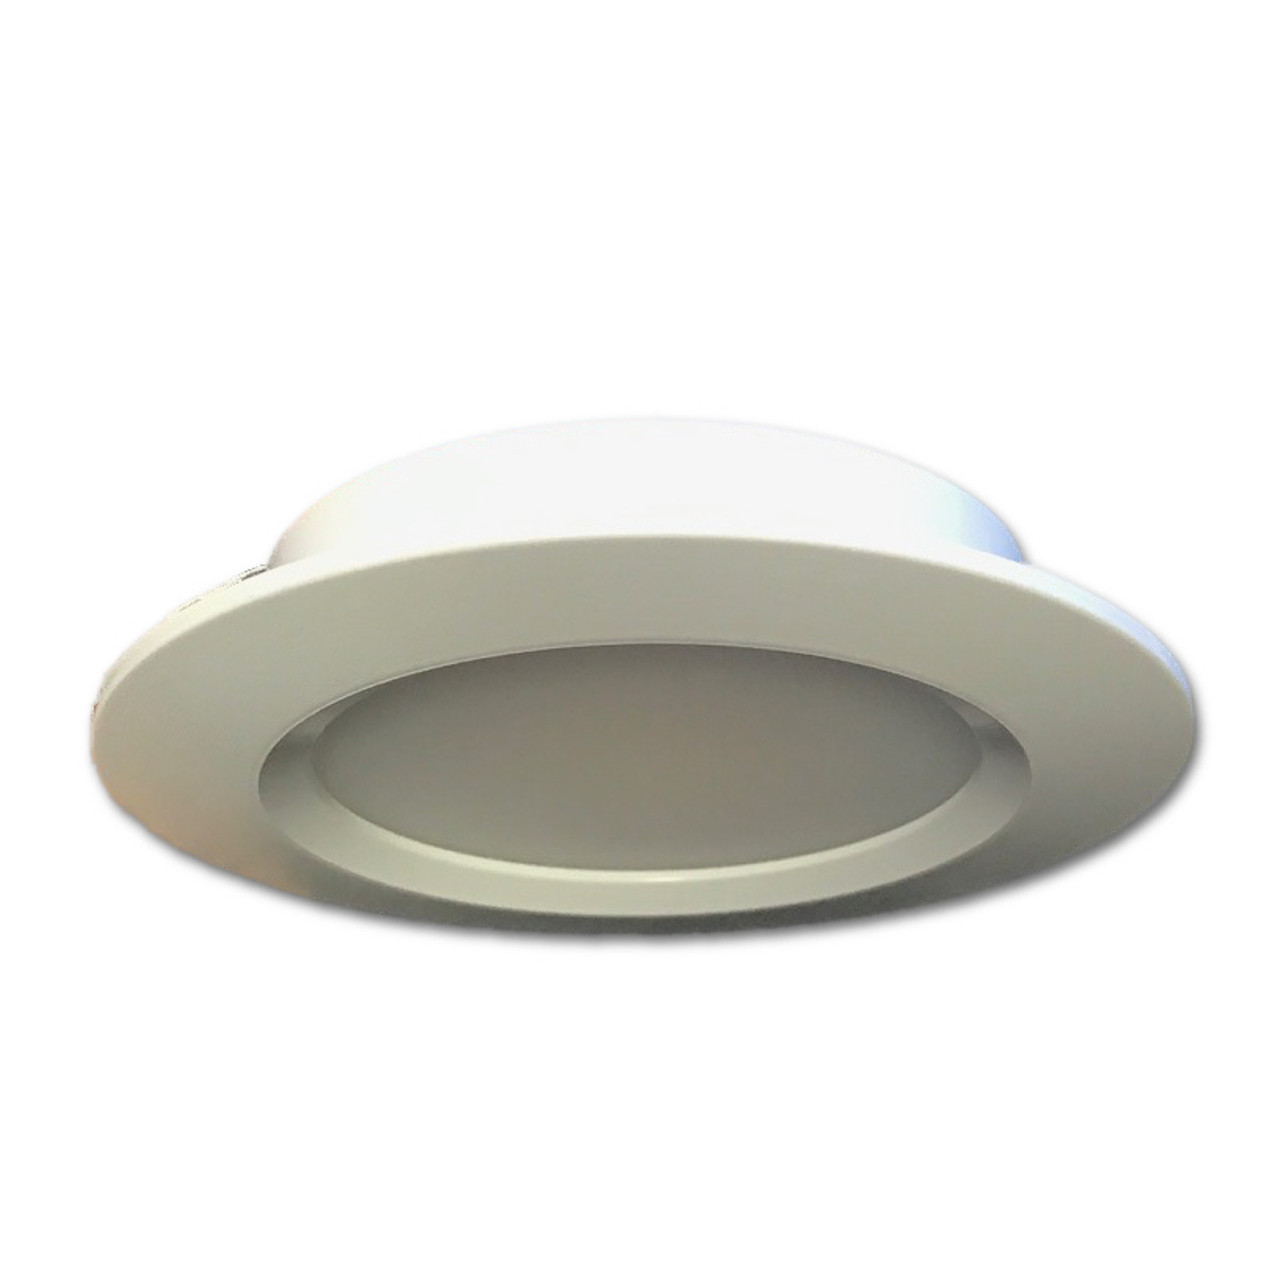 2 5w 18 Led Recessed Ceiling Light For Boats 12v Or 24v Replaces 12v10w Halogen Fixtures